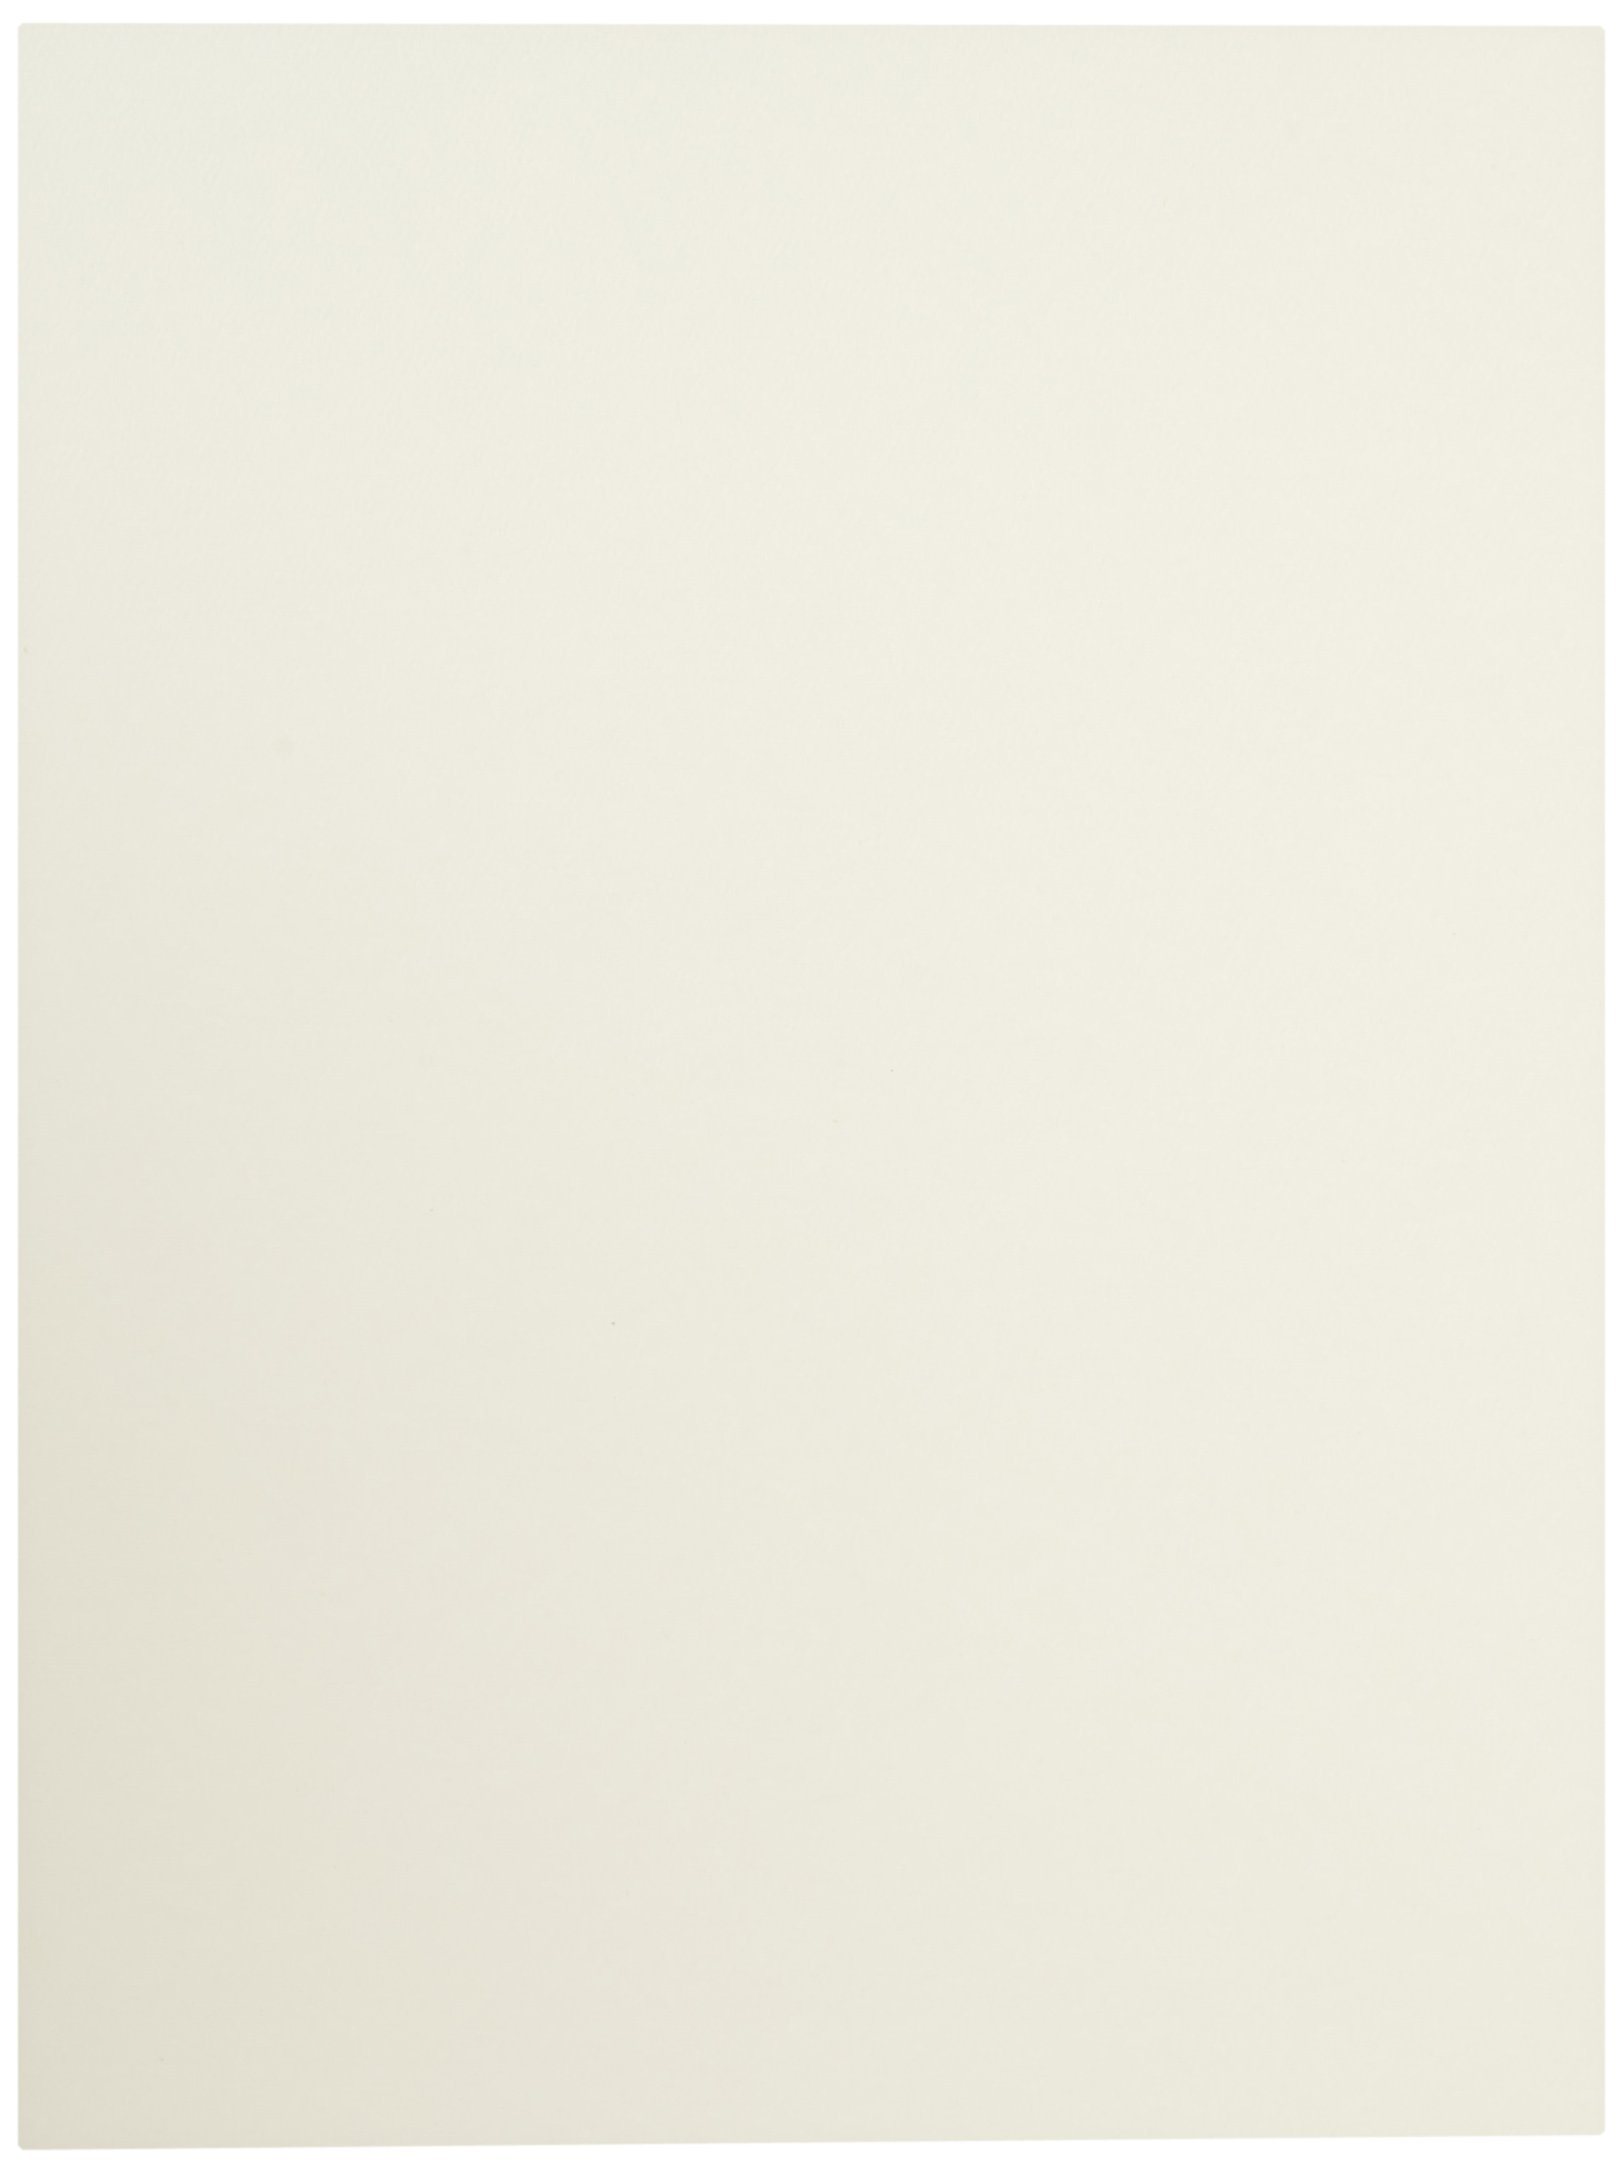 Sax Watercolor Paper Beginner Paper, 9 x 12 Inches, Natural White, Pack of 100